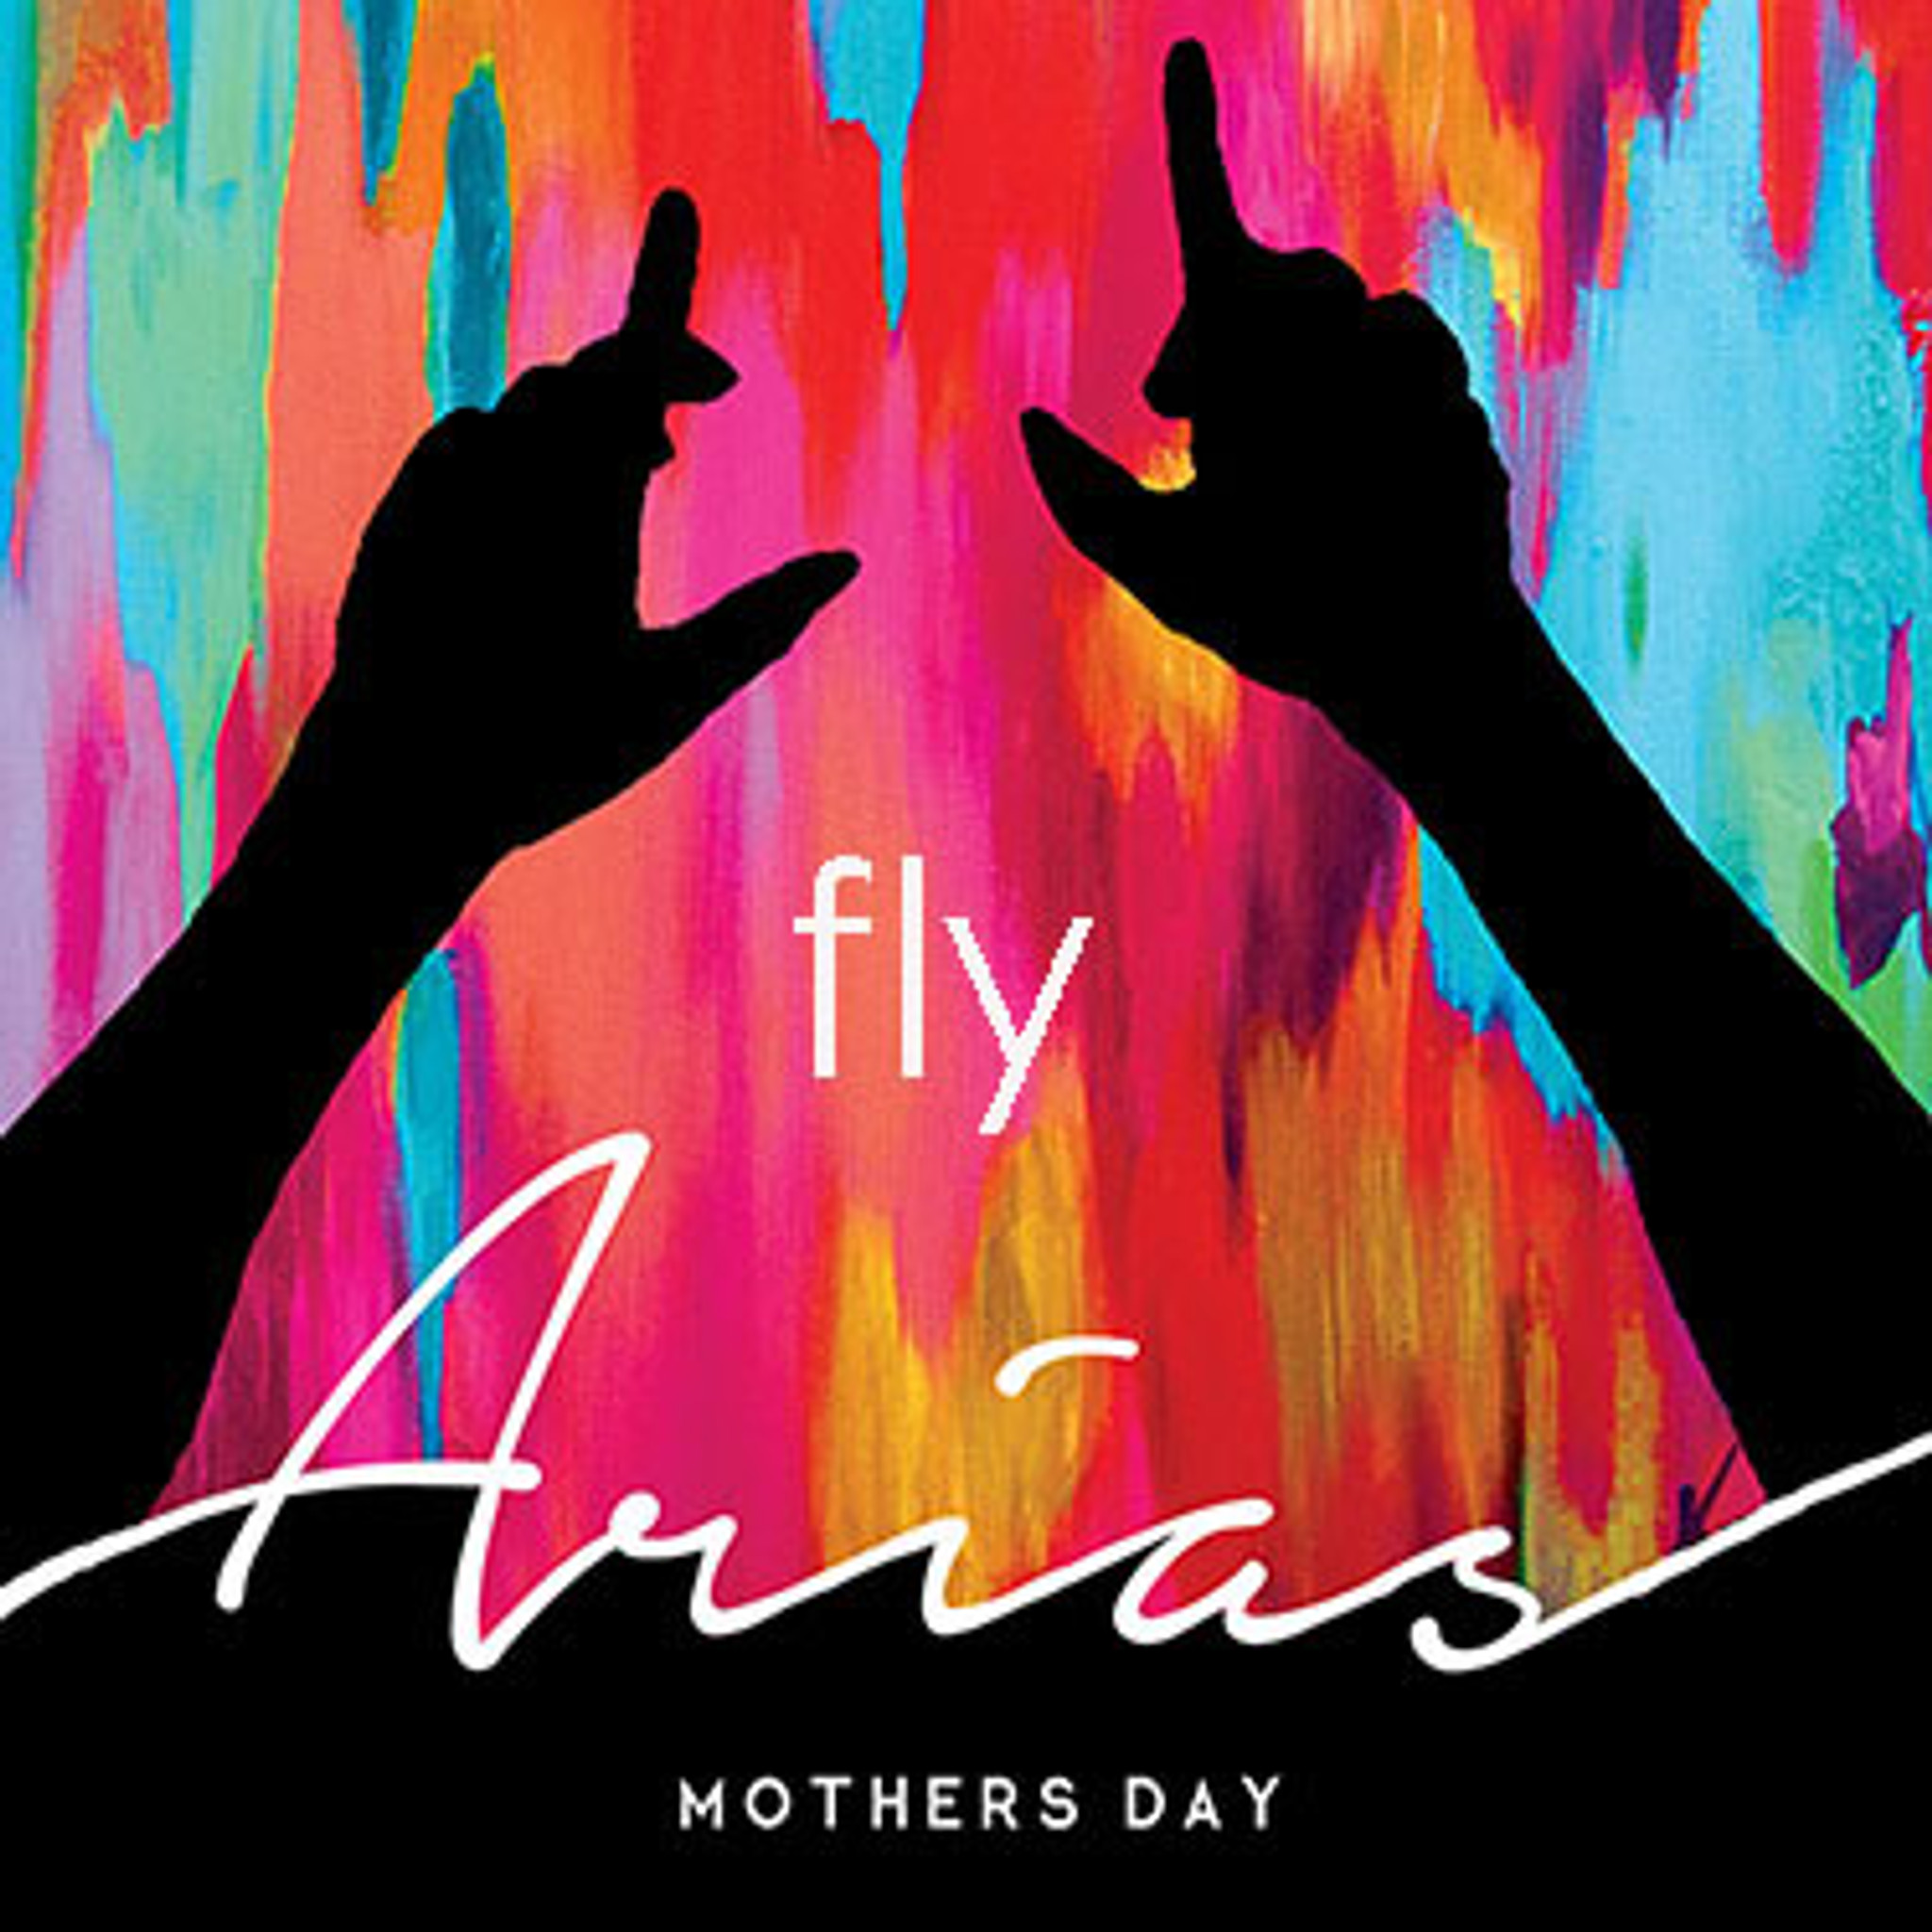 """Fly"" delivers beautiful piano forward inspiration...with a mid range that is slowly introduced...the bass notes build up to a drop kicking off an electronic dance music and suprising latino finish!!!  ""Fly"" pairs greatly with a glass of wine just before you dance.  Proceeds benefit David Ortiz Children's Foundation"